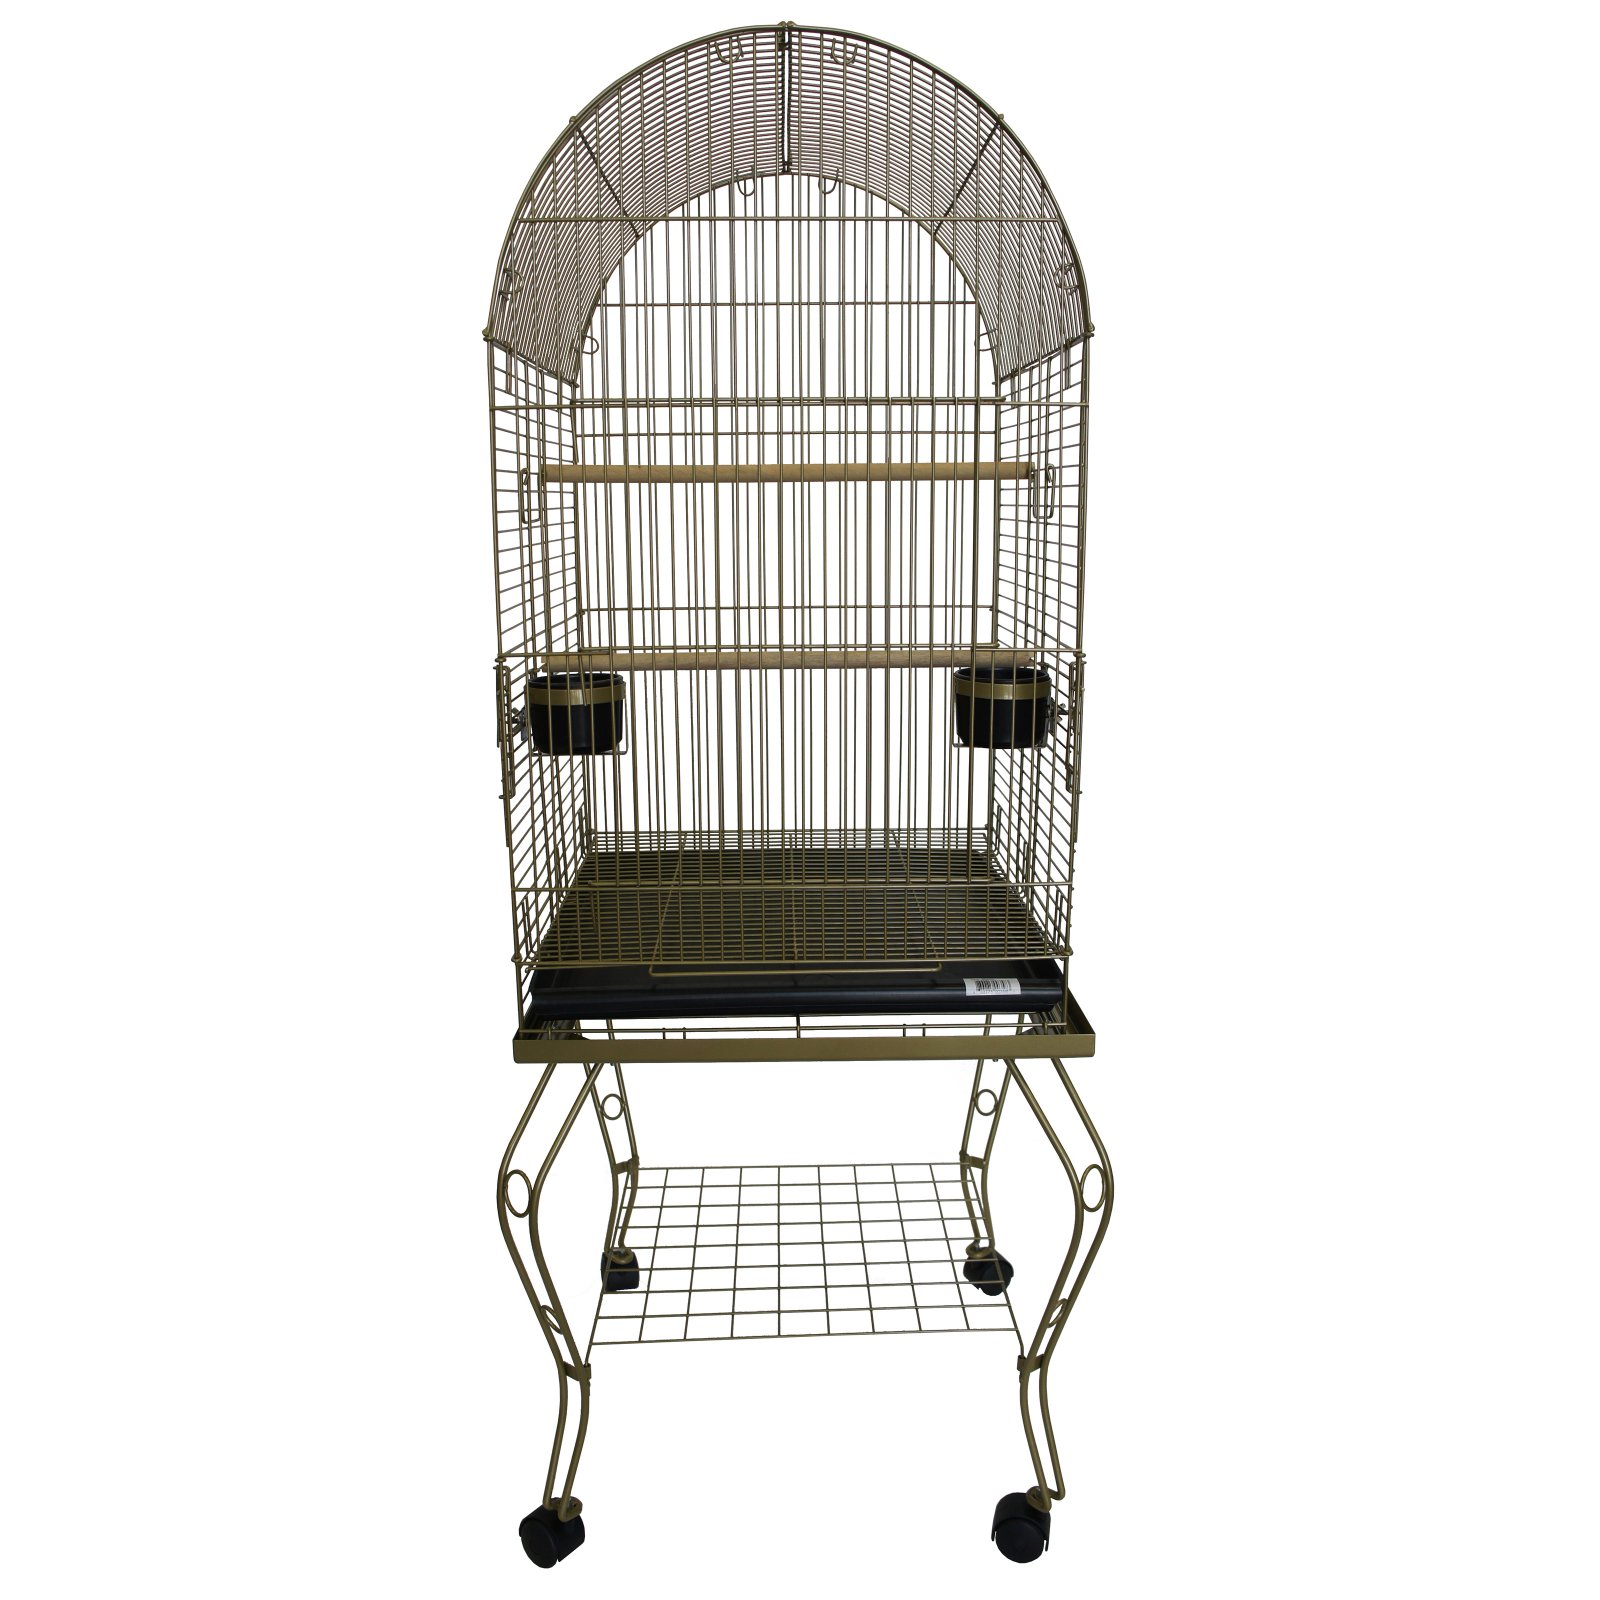 YML 20 in. Dometop Parrot Cage With Stand - Gold